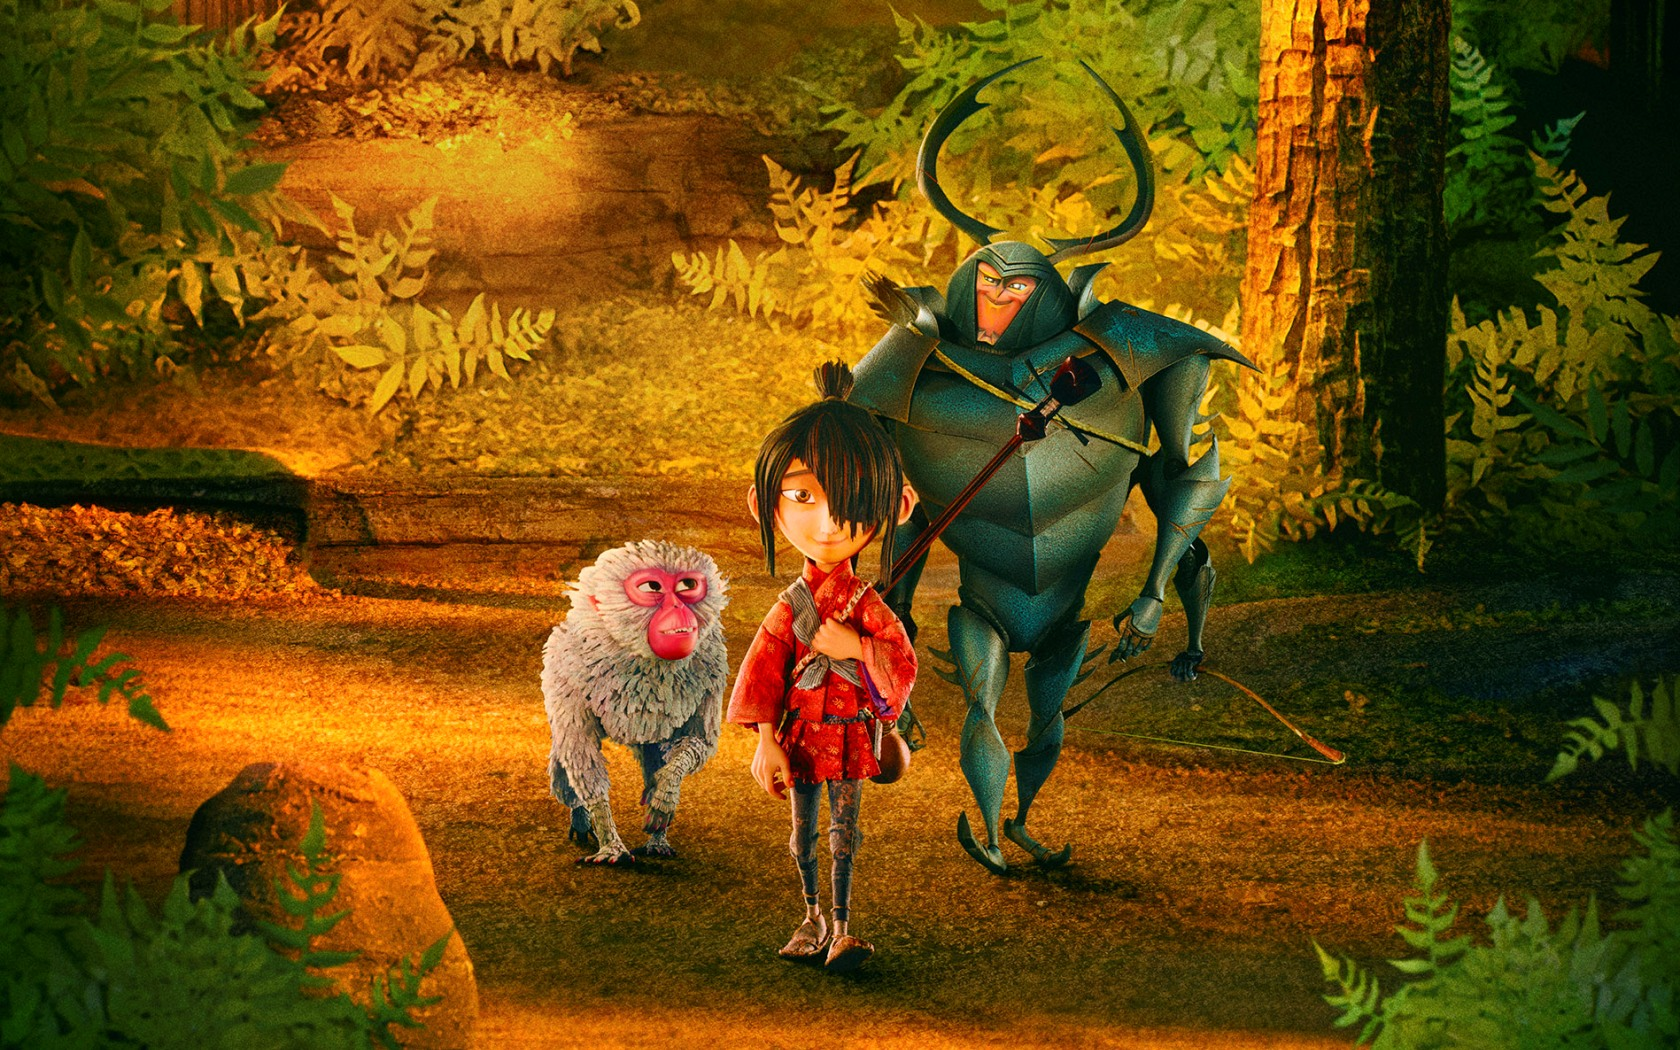 (l to r) Monkey (voiced by Charlize Theron), Kubo (voied by Art Parkinson) and Beetle (voiced by Matthew McConaughey) in Kubo and the Two Strings (2016)